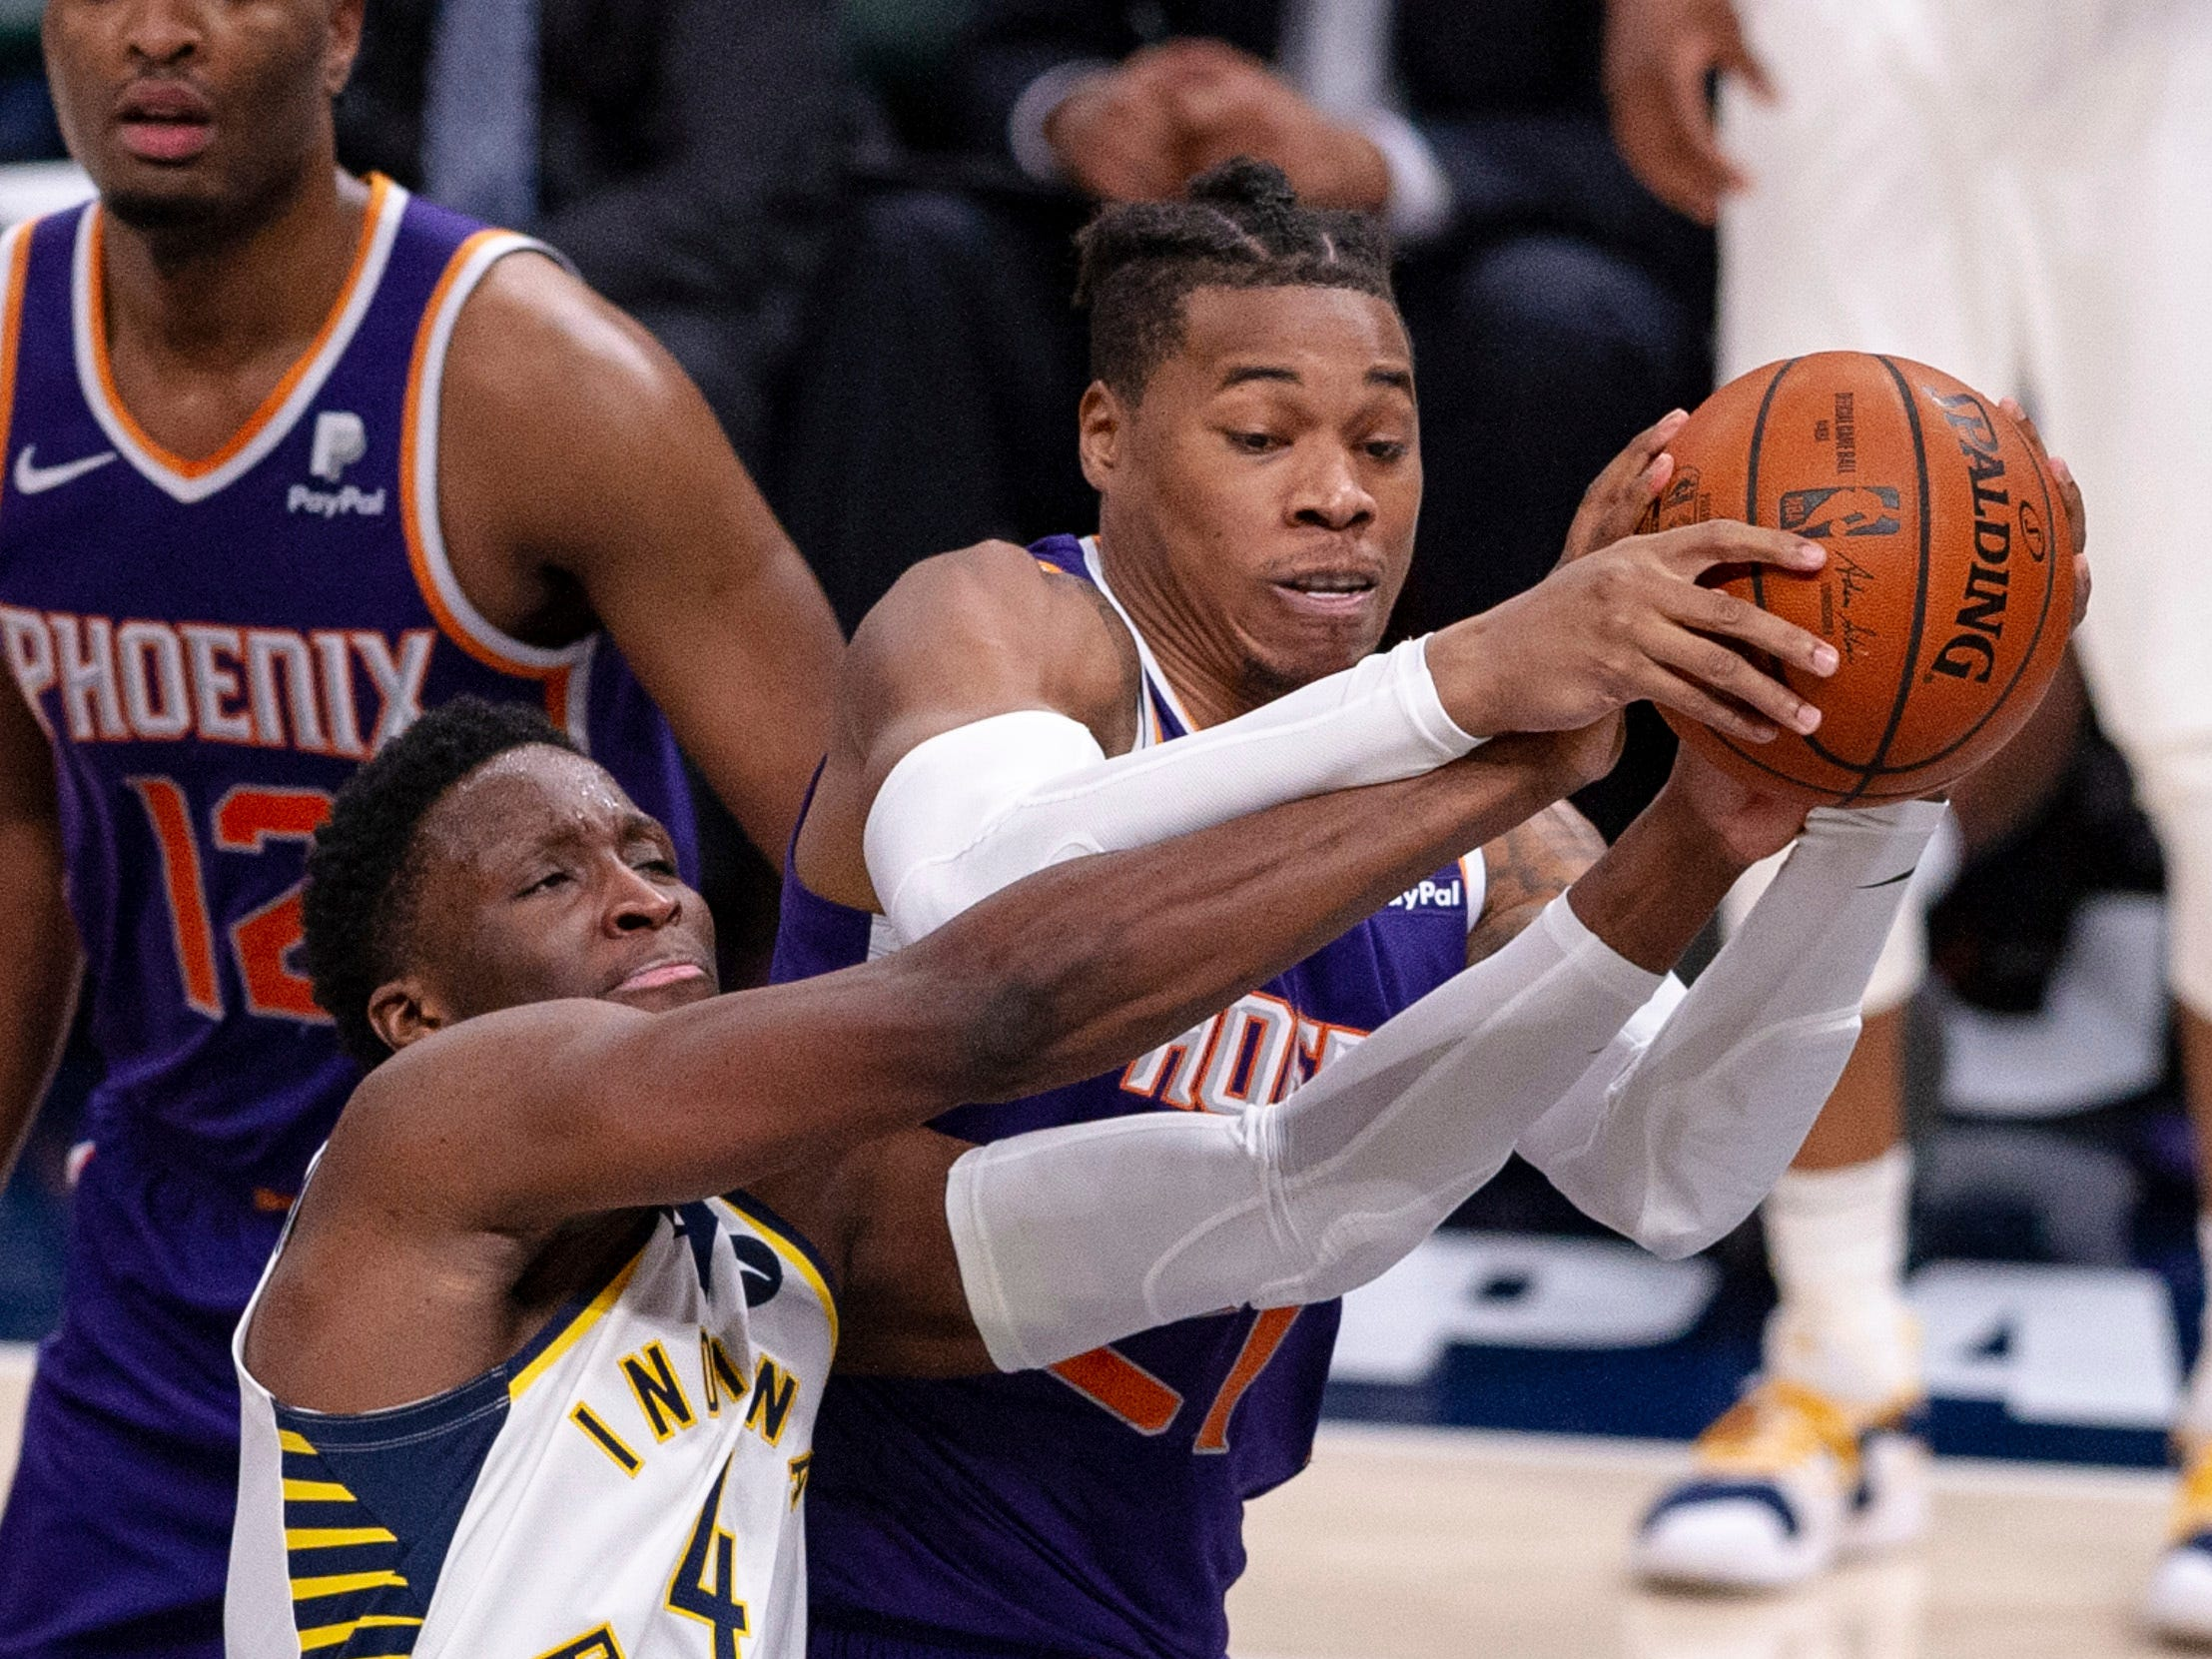 Indiana Pacers guard Victor Oladipo (4) competes for the ball with Phoenix Suns forward Richaun Holmes (21) during the second half of an NBA basketball game Tuesday, Jan. 15, 2019, in Indianapolis. The Pacers won 131-97.